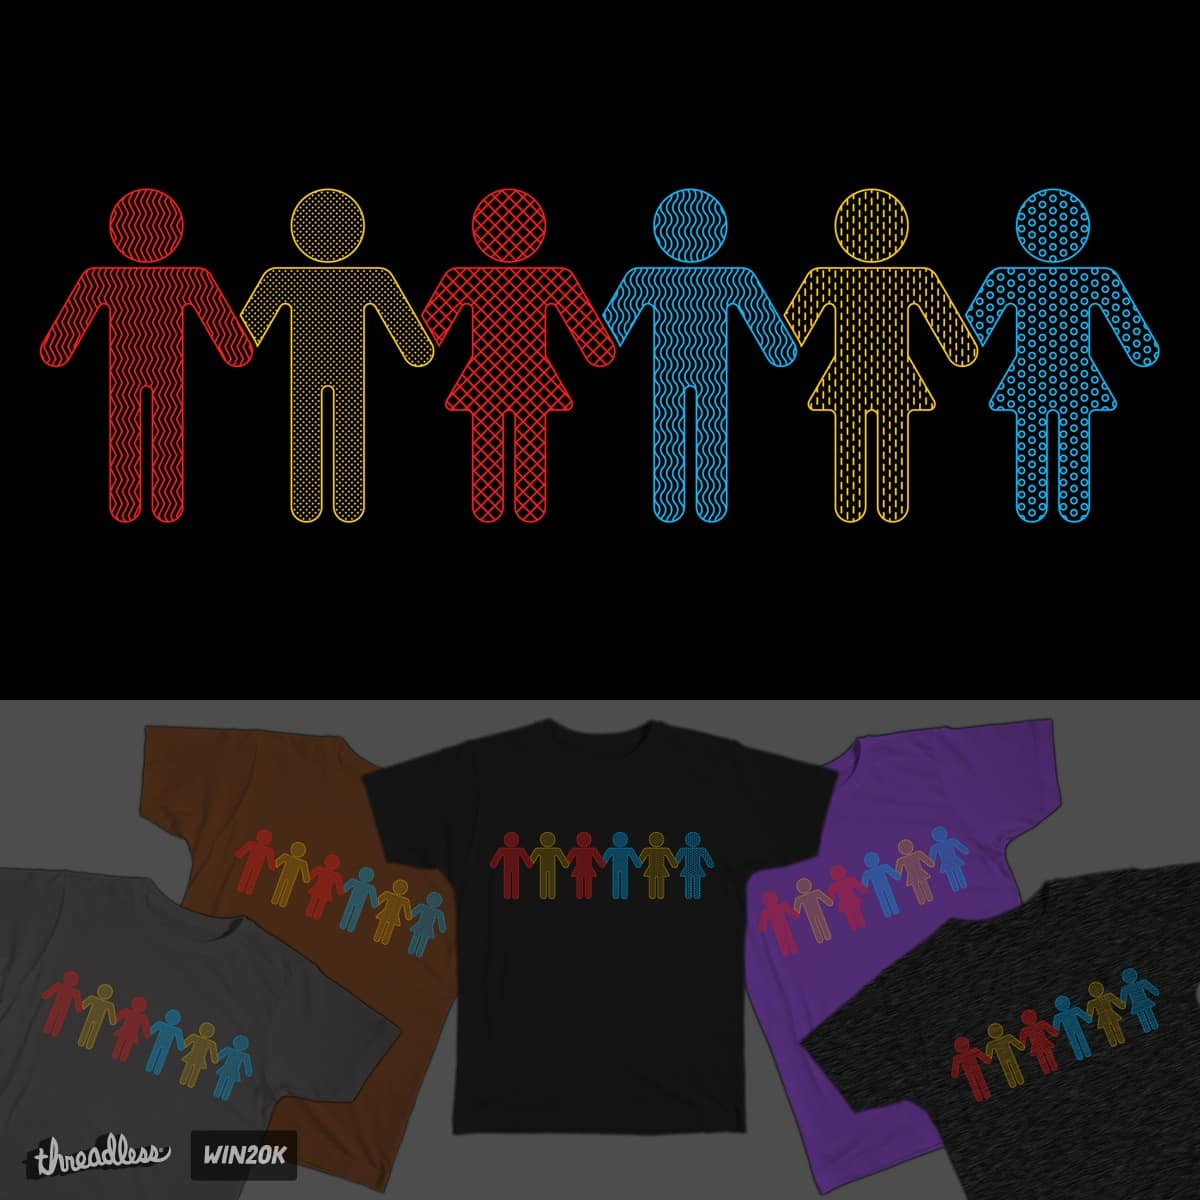 HumaniTee by totemic on Threadless